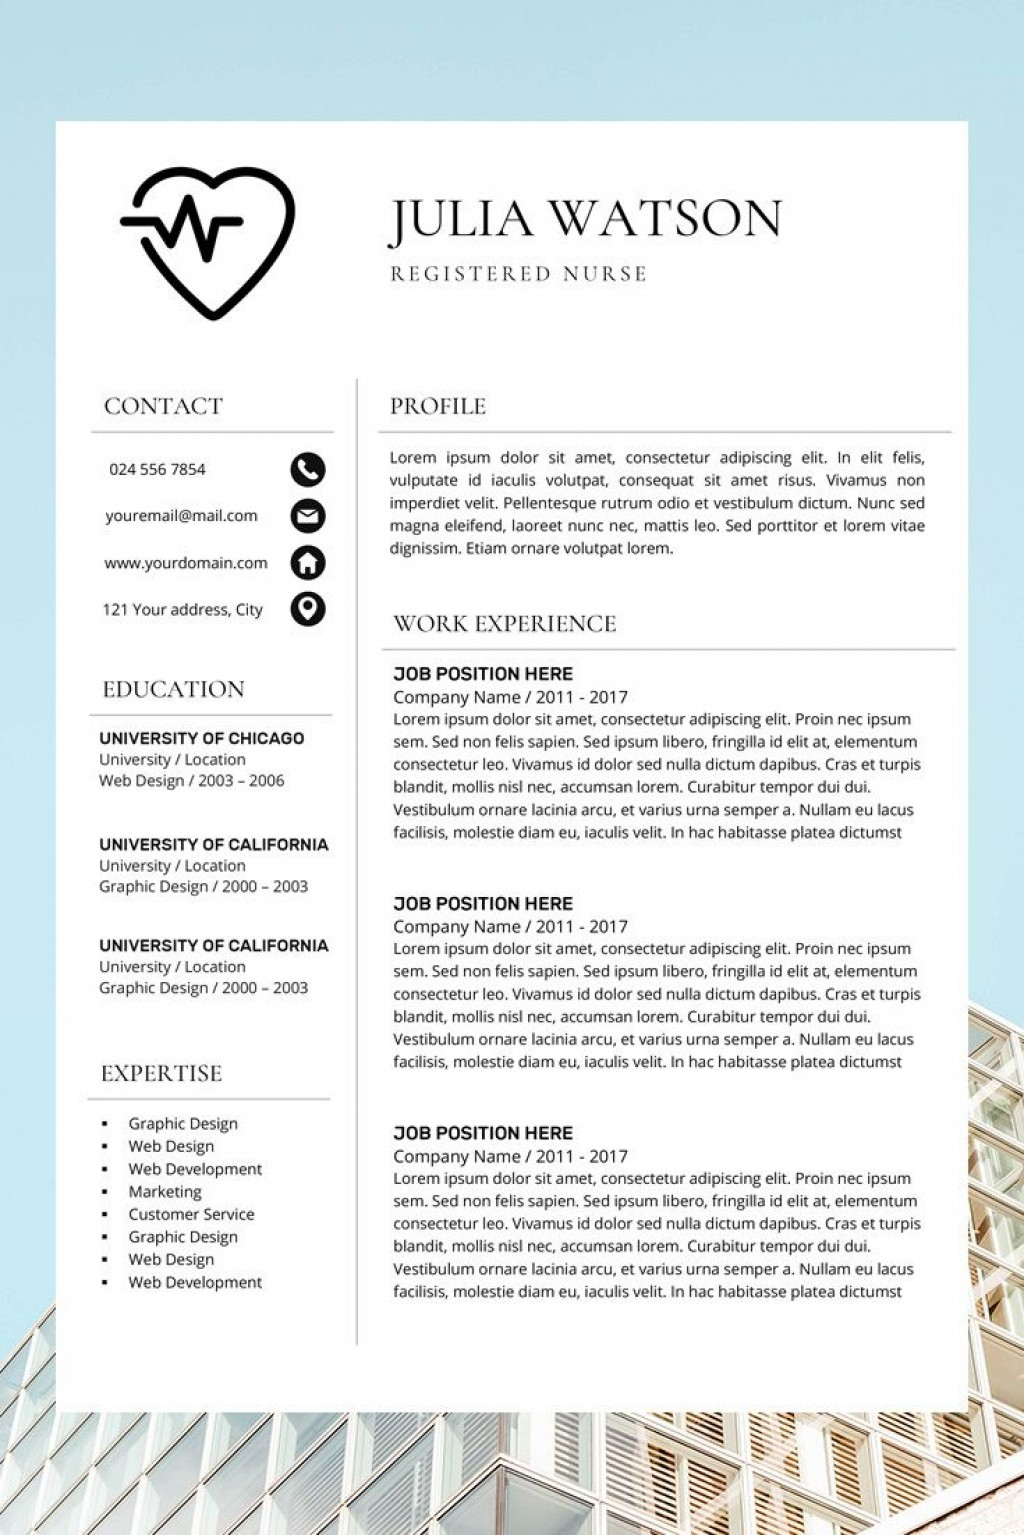 001 Amazing Nurse Resume Template Free Idea  Graduate RnLarge